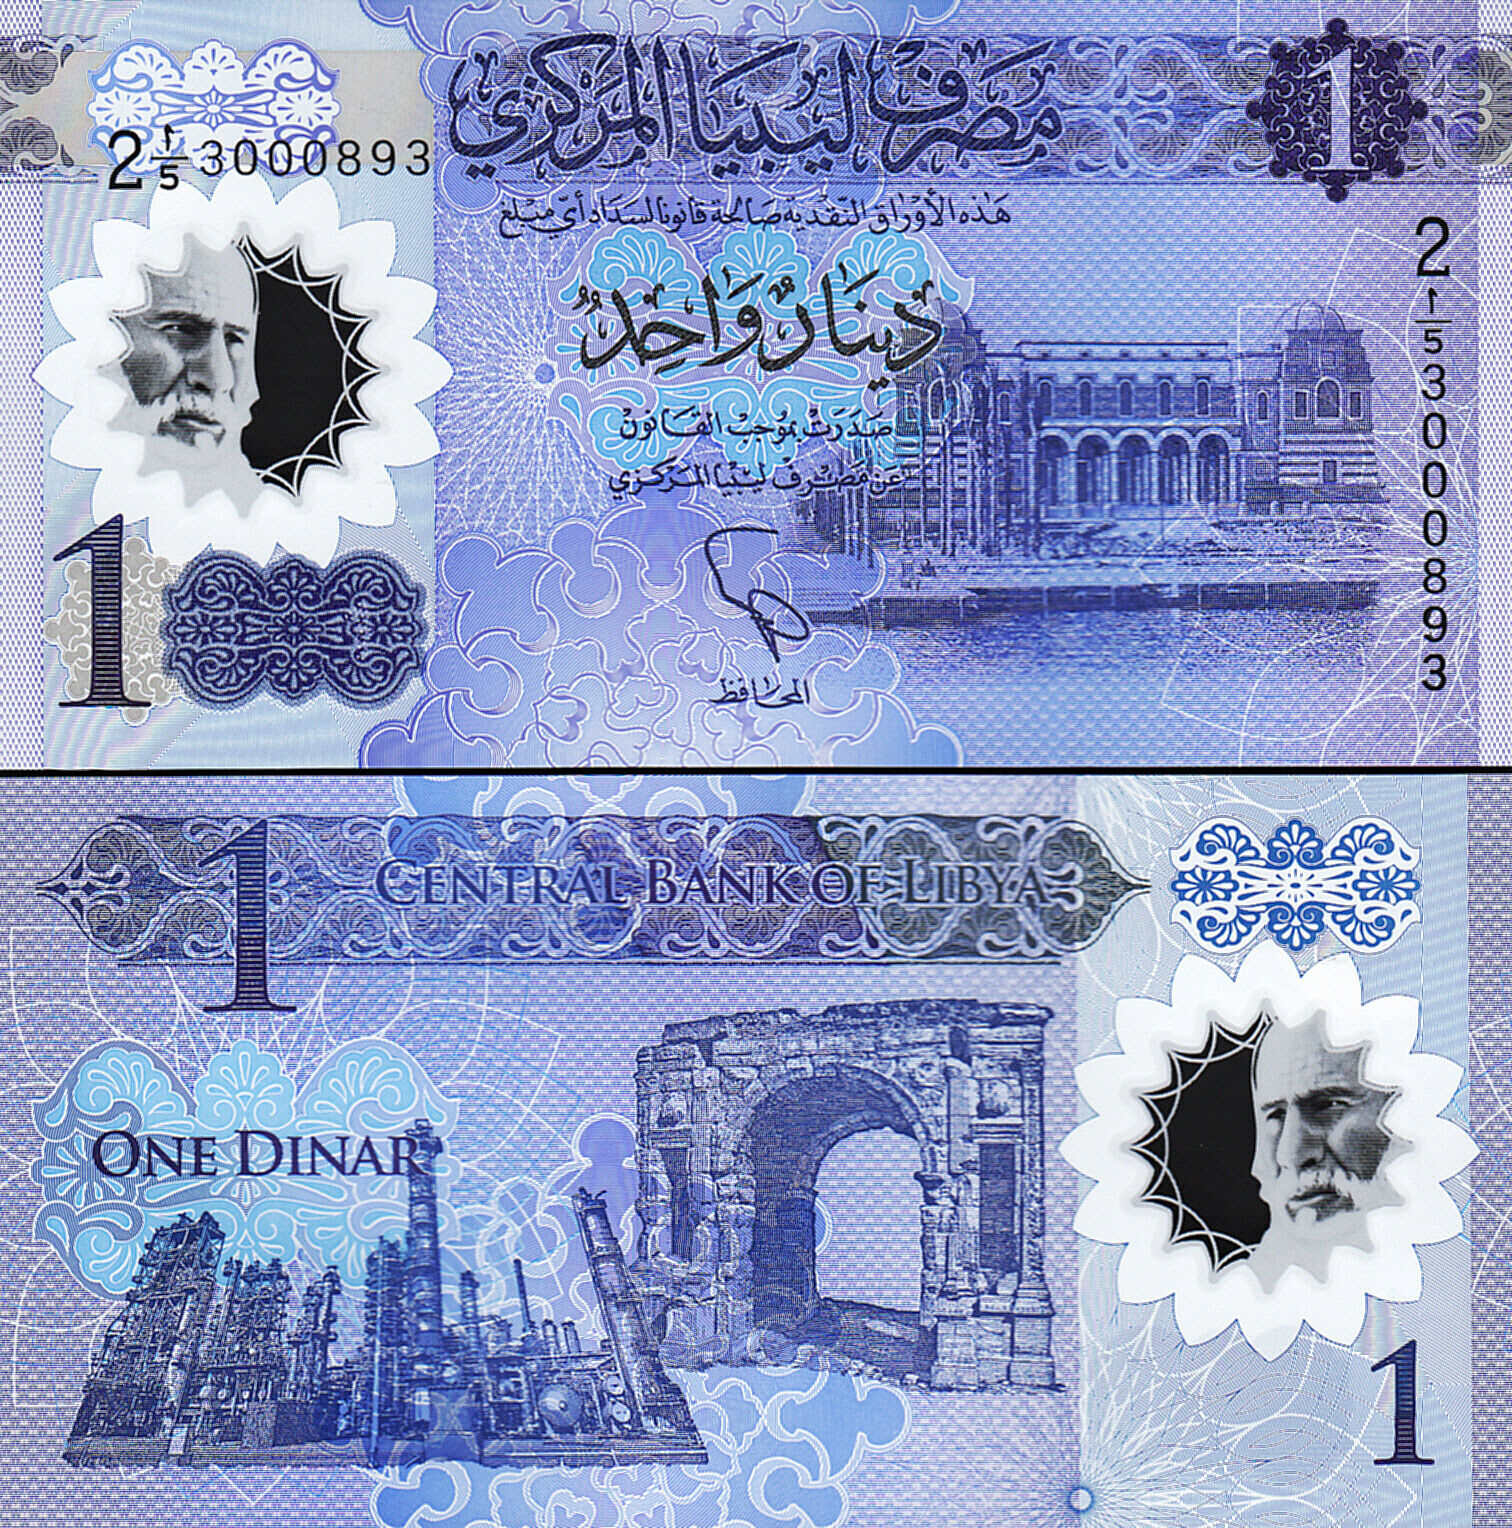 Commemorative 1 Dinar Polymer Banknote